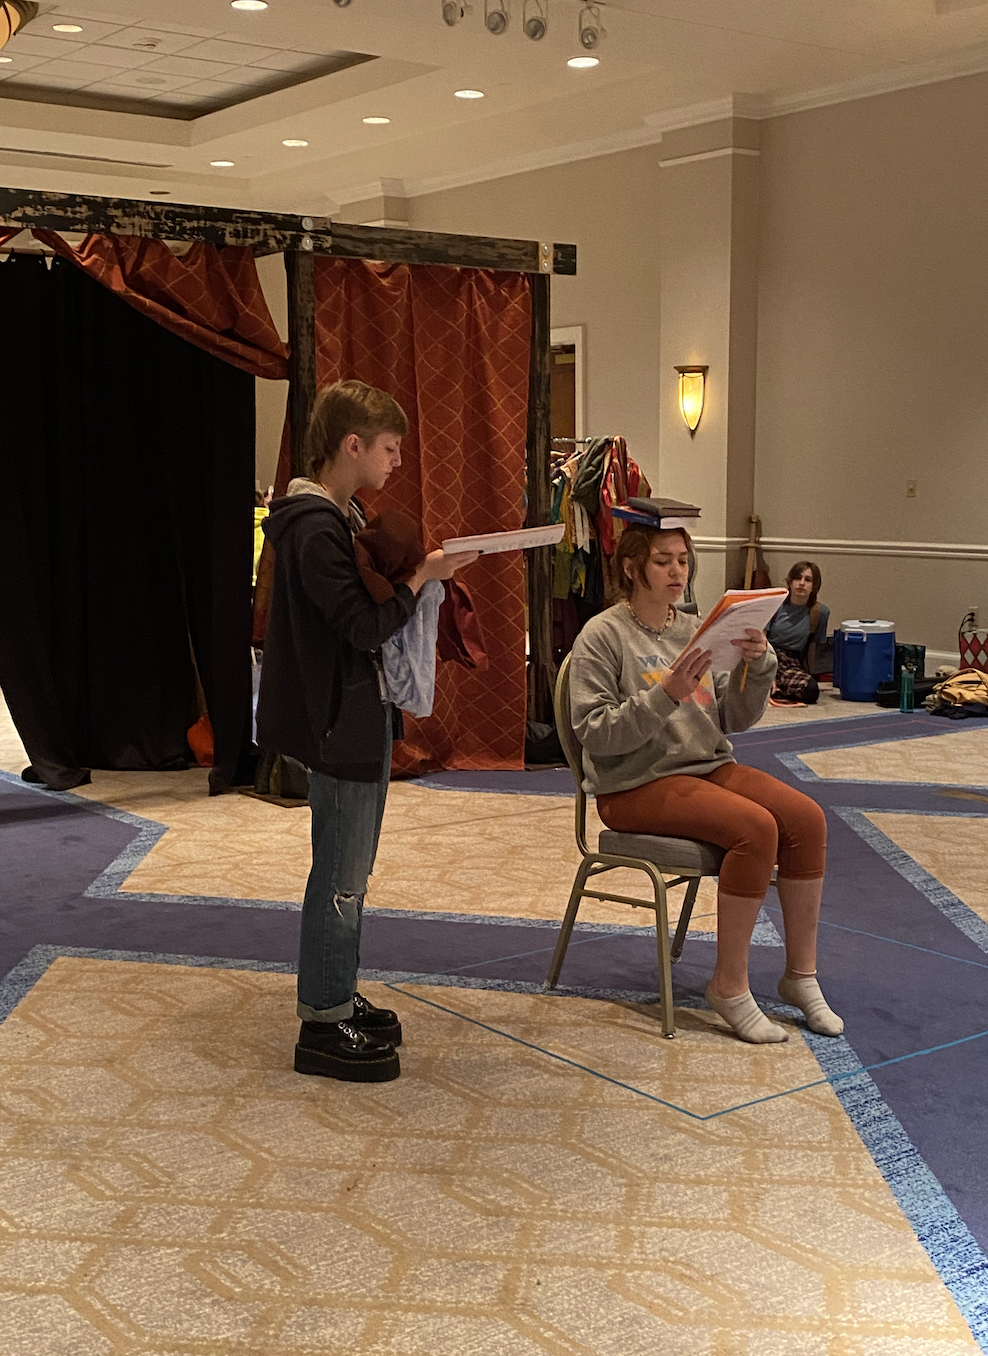 Lee (Alice) and Maddie (Katherine) rehearsing the English lesson scene (while Maddie practices her other talent of balancing books on her head)